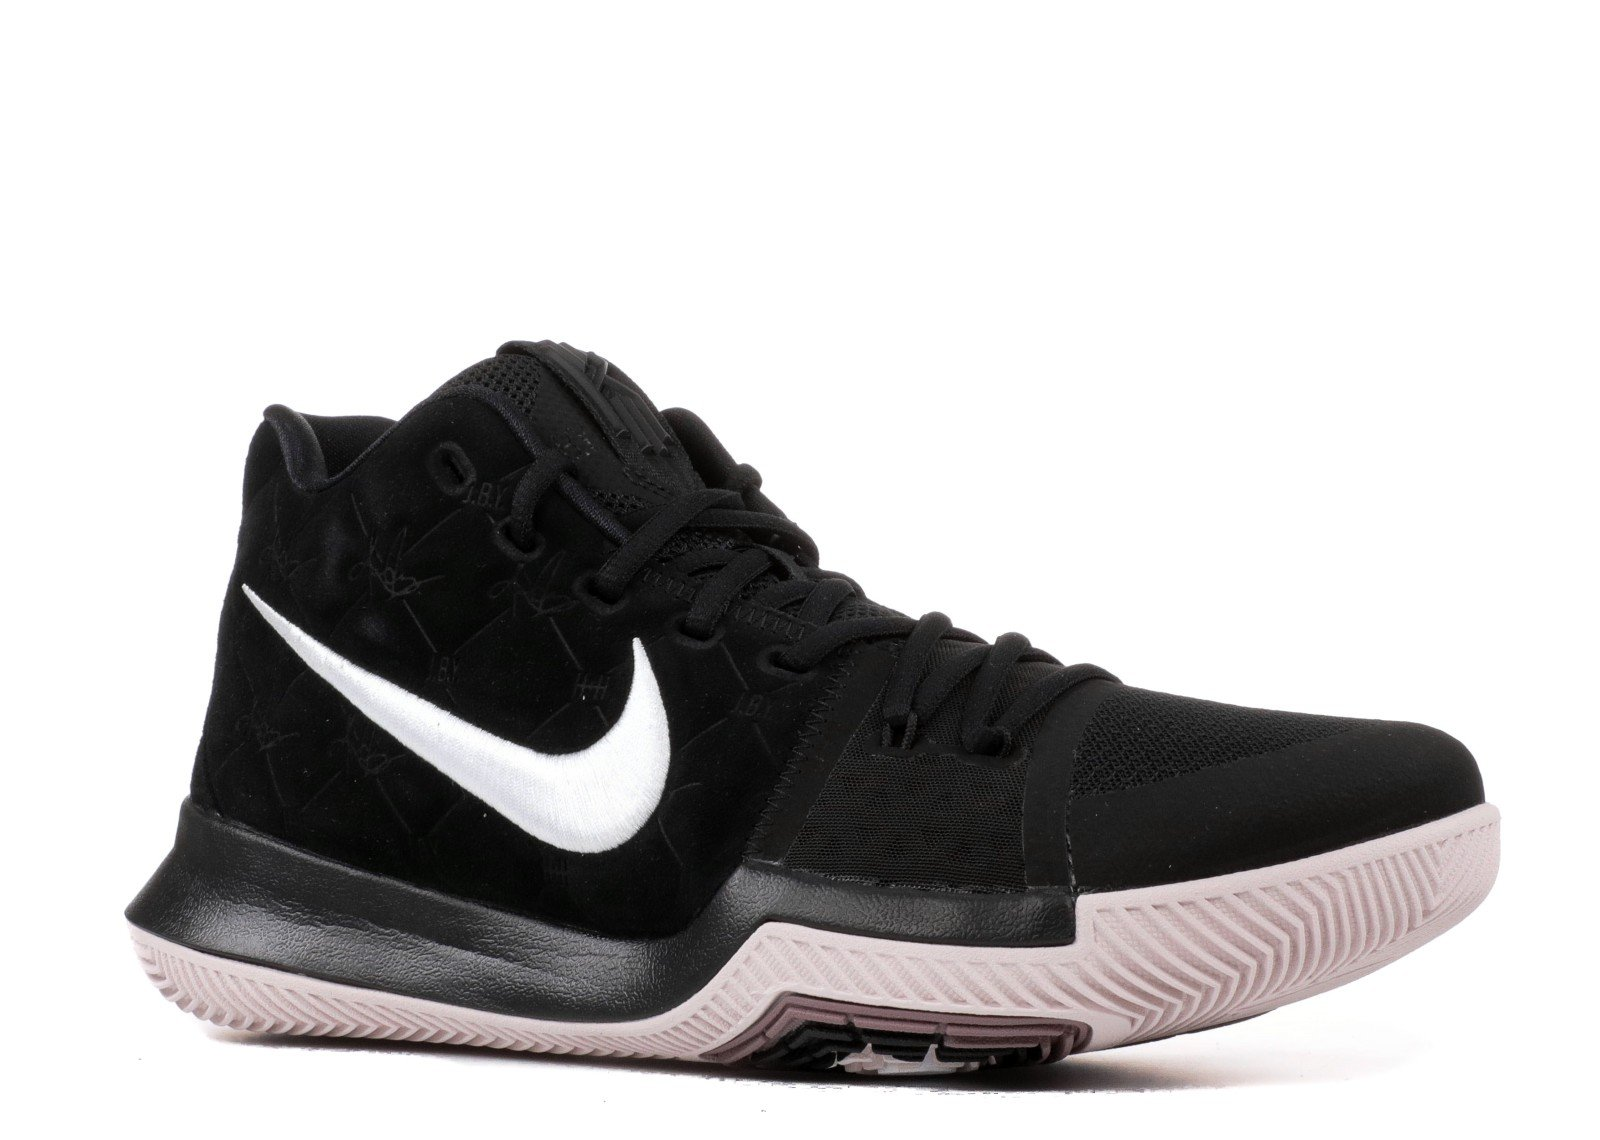 NIKE Kyrie 3 Men's Basketball Shoes (11.5, Black/White)